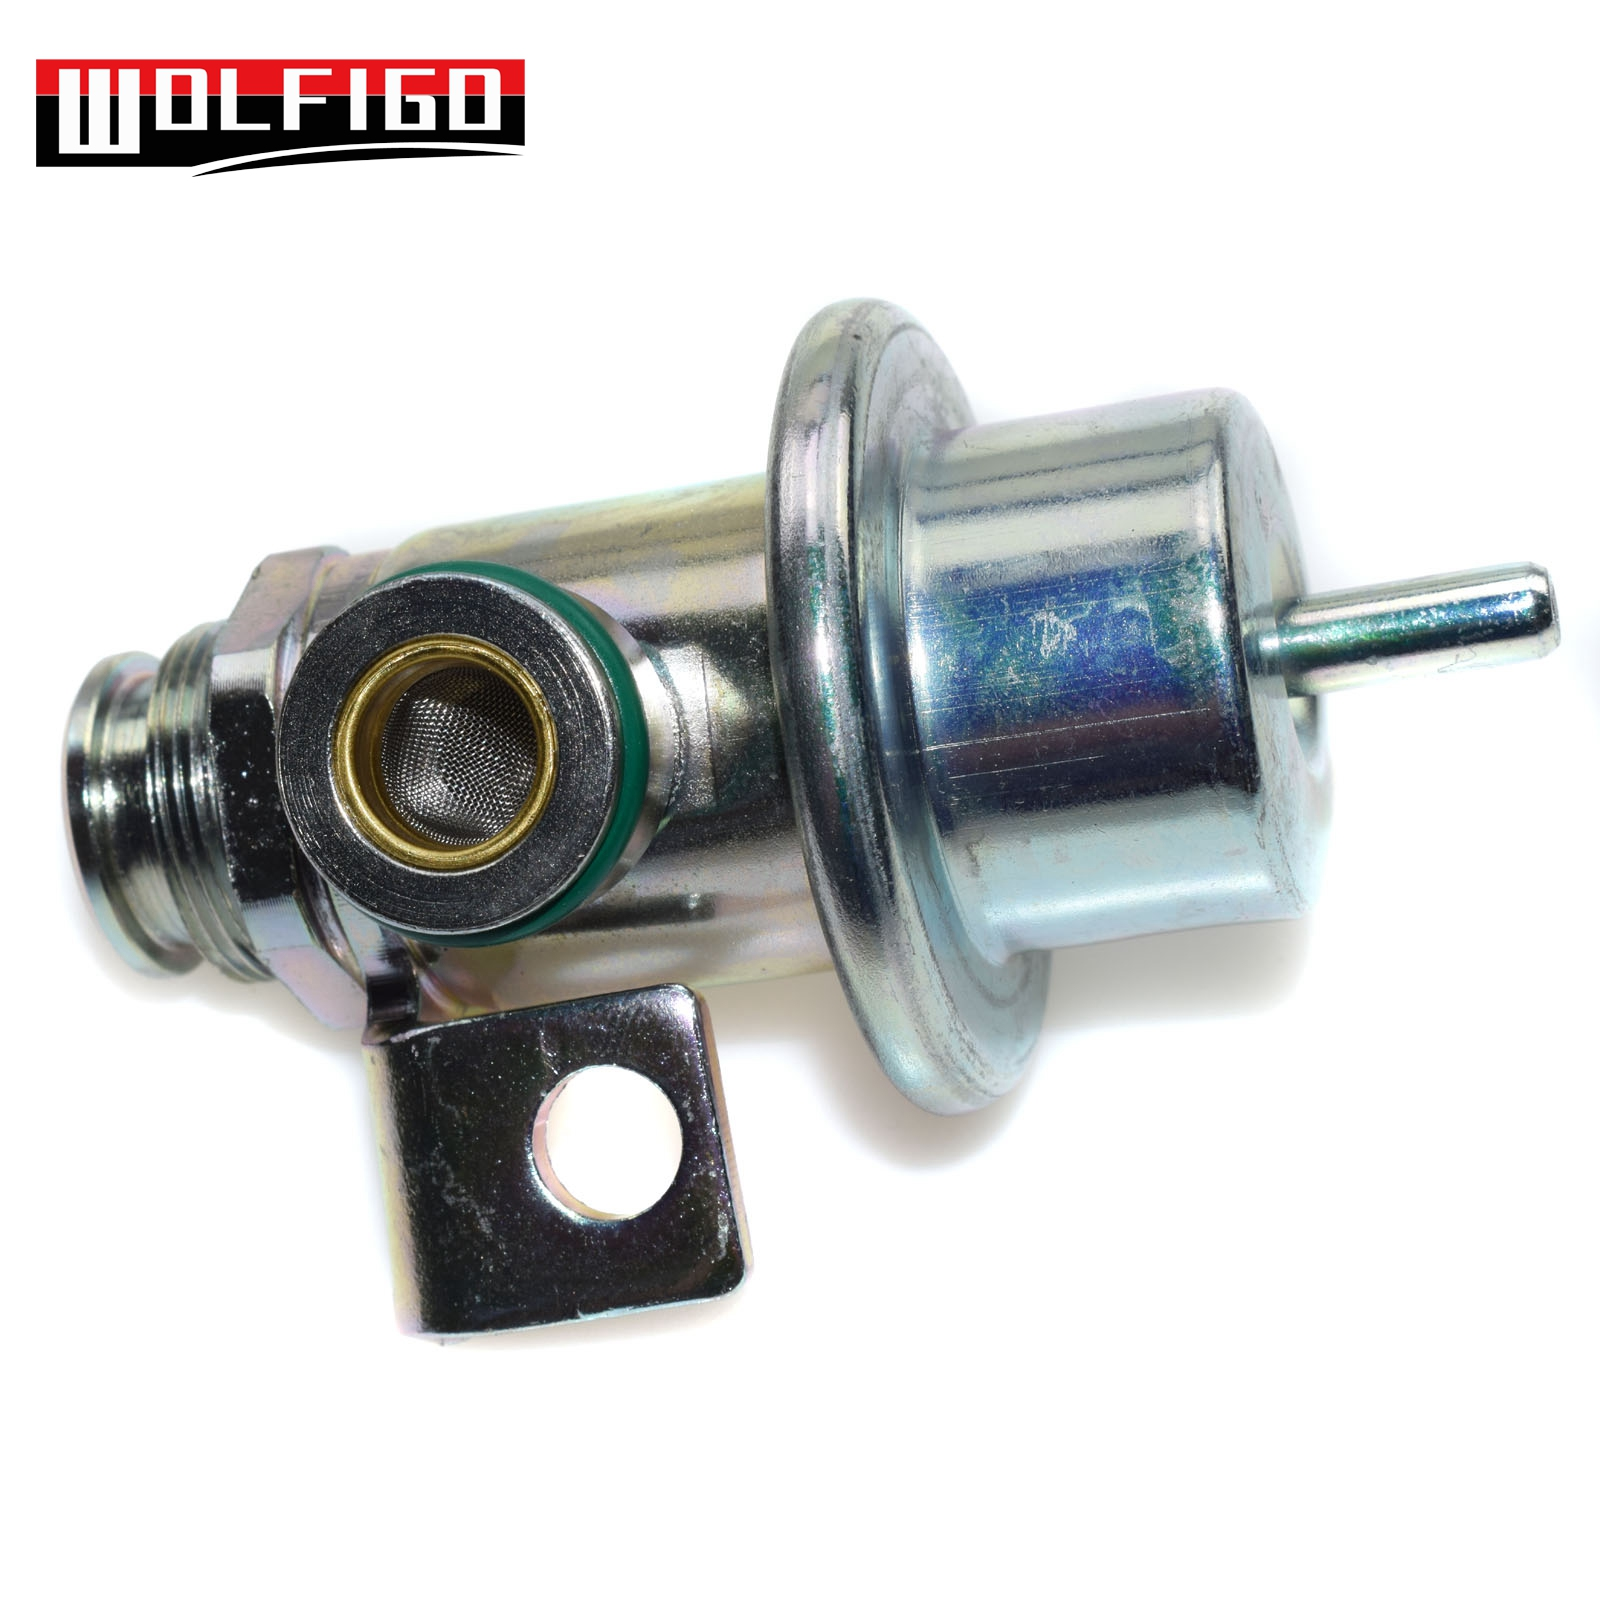 US $14 8 25% OFF|WOLFIGO PR216 Fuel Injection Pressure Regulator For  Oldsmobile Pontiac Buick Chevy 1994 1999 17120440,217399-in Oil Pressure